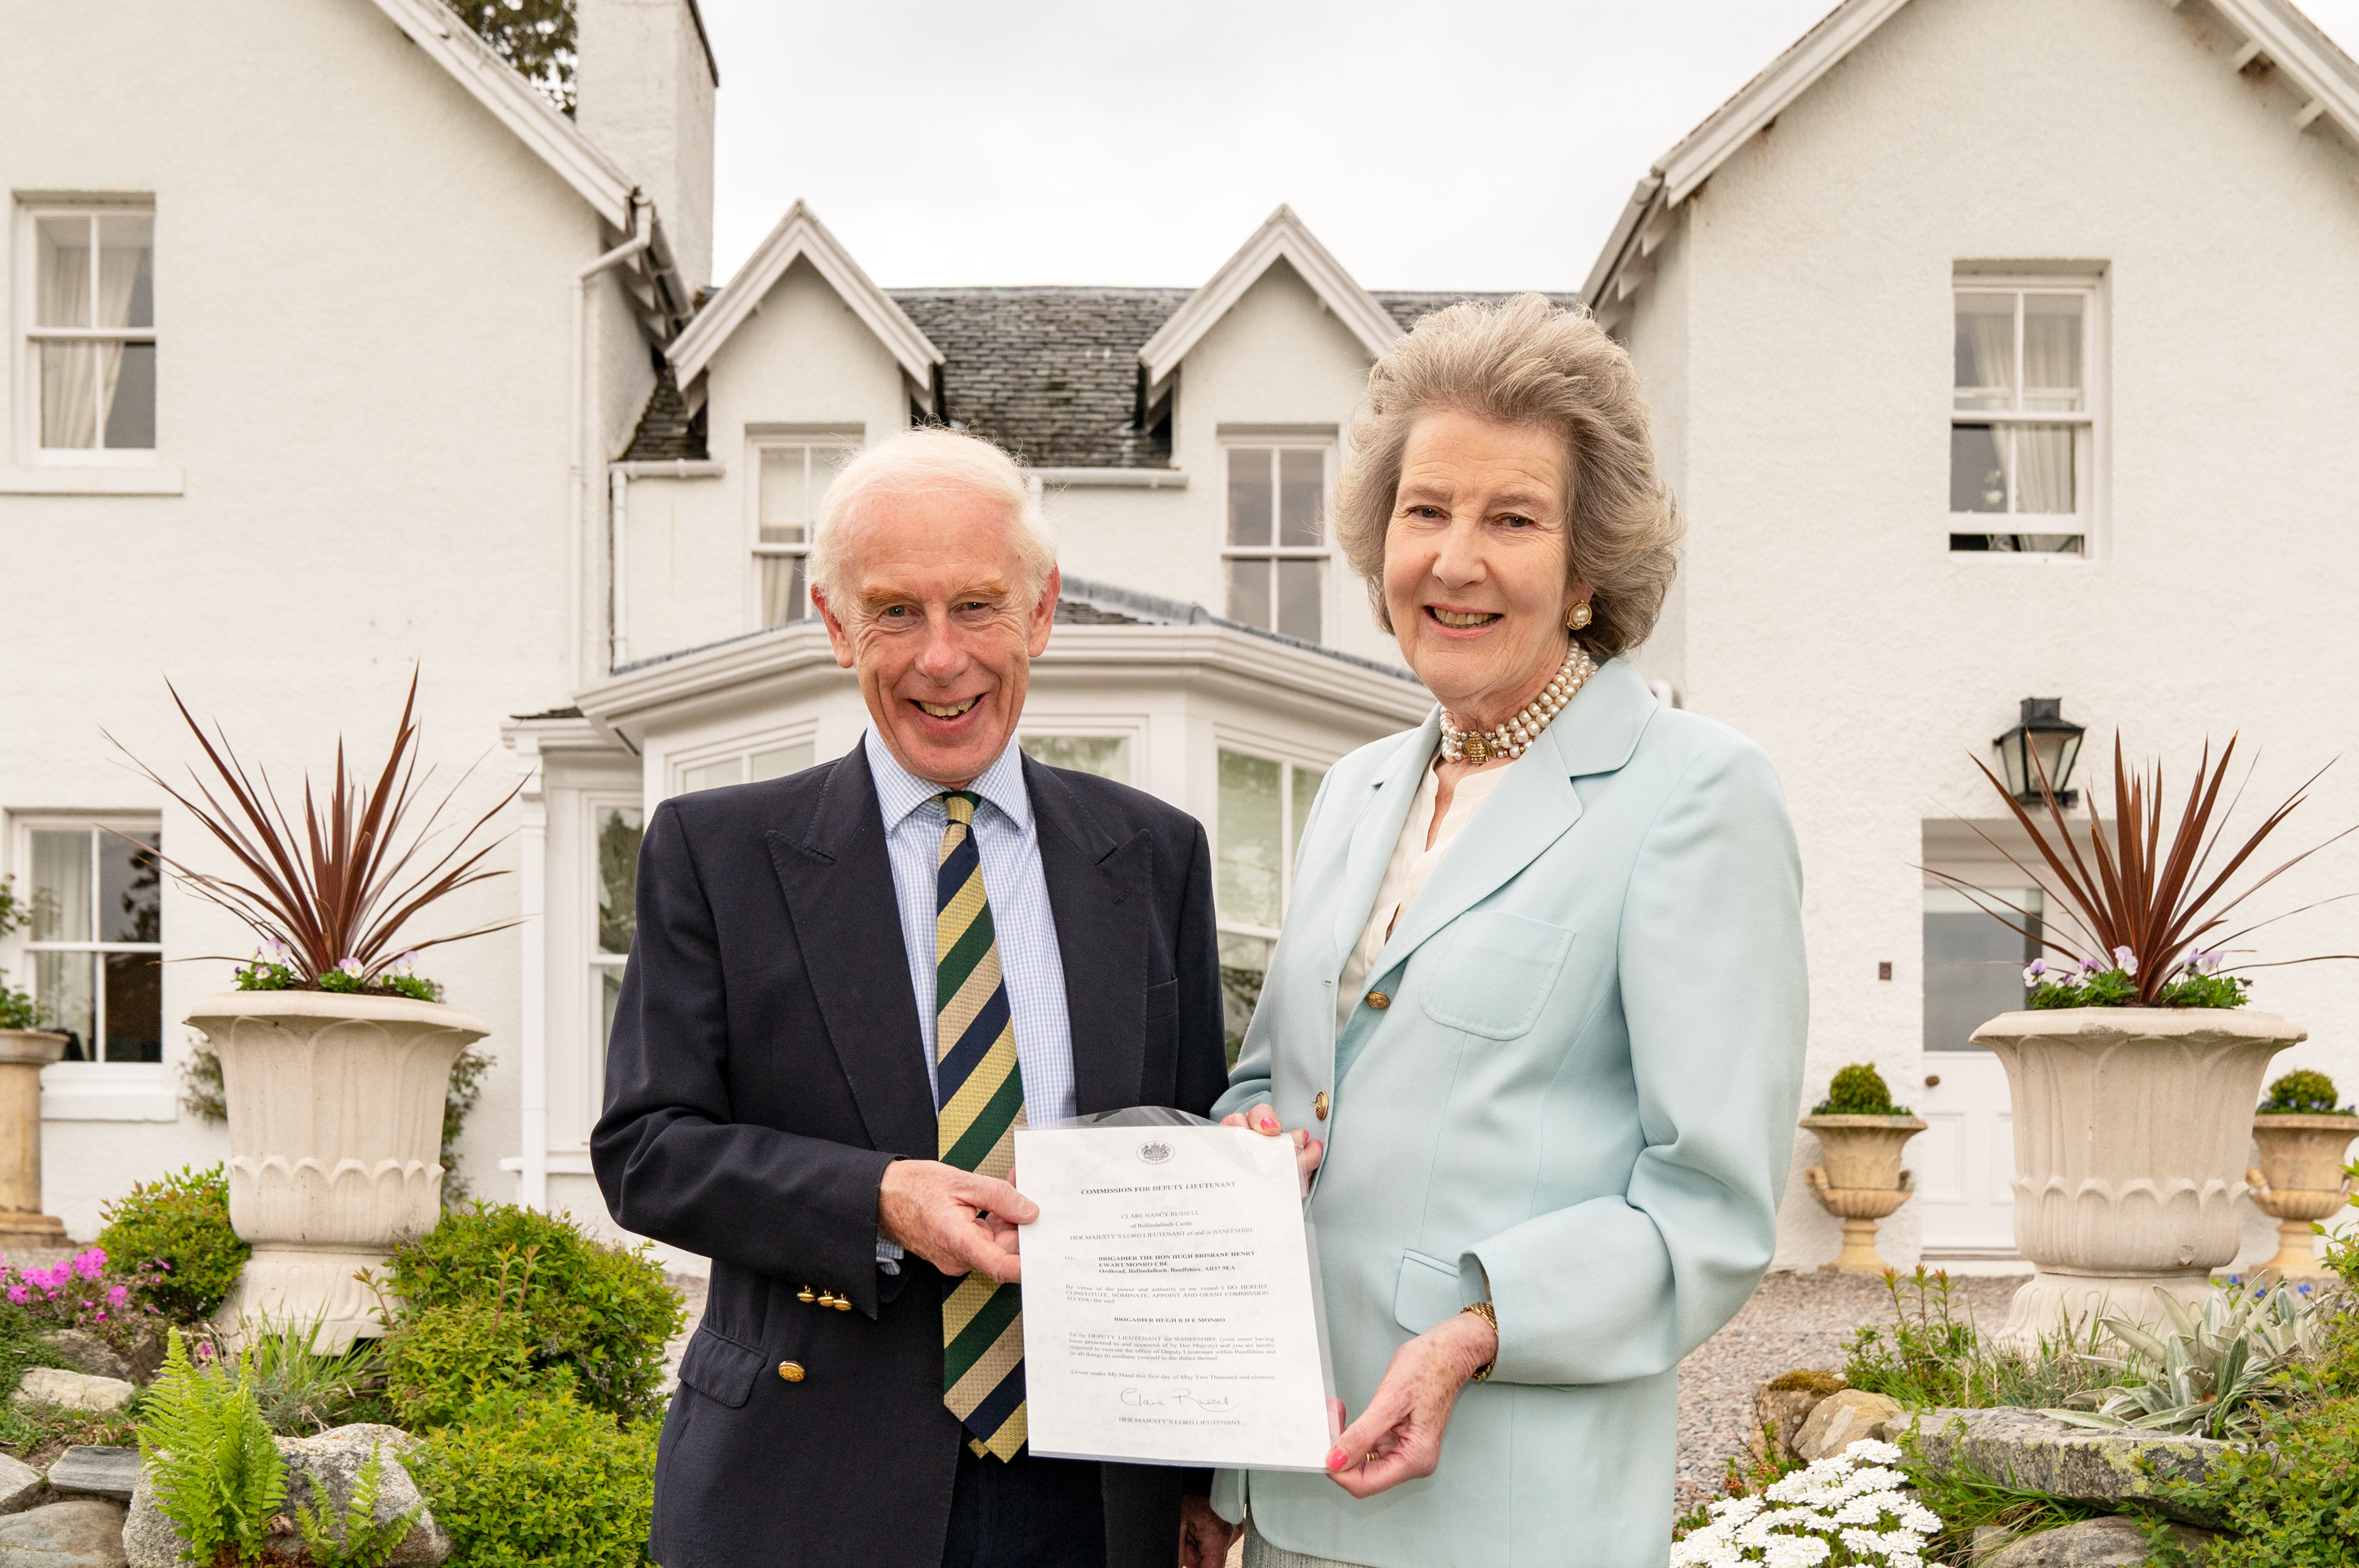 Brigadier Hugh Monro being enrolled as Deputy Lord Lieutenant by Lord-Lieutenant of Banffshire, Mrs Clare Russell.